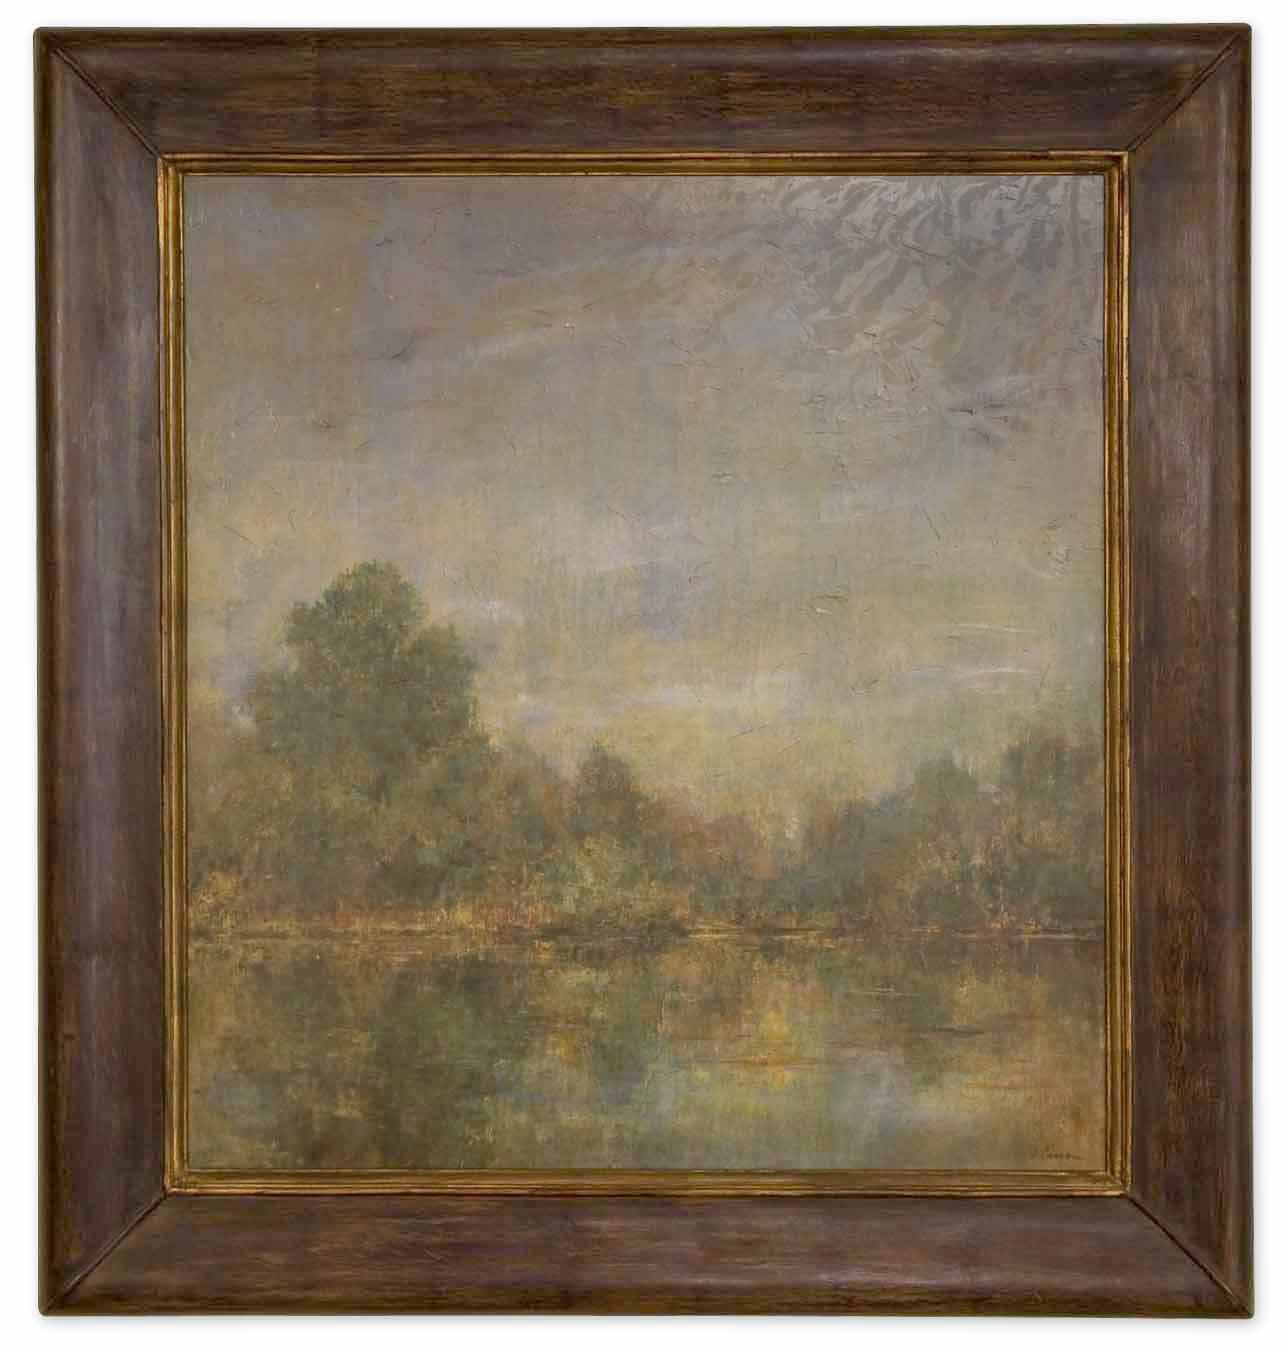 Uttermost 50922 Eve's Lake Framed Art